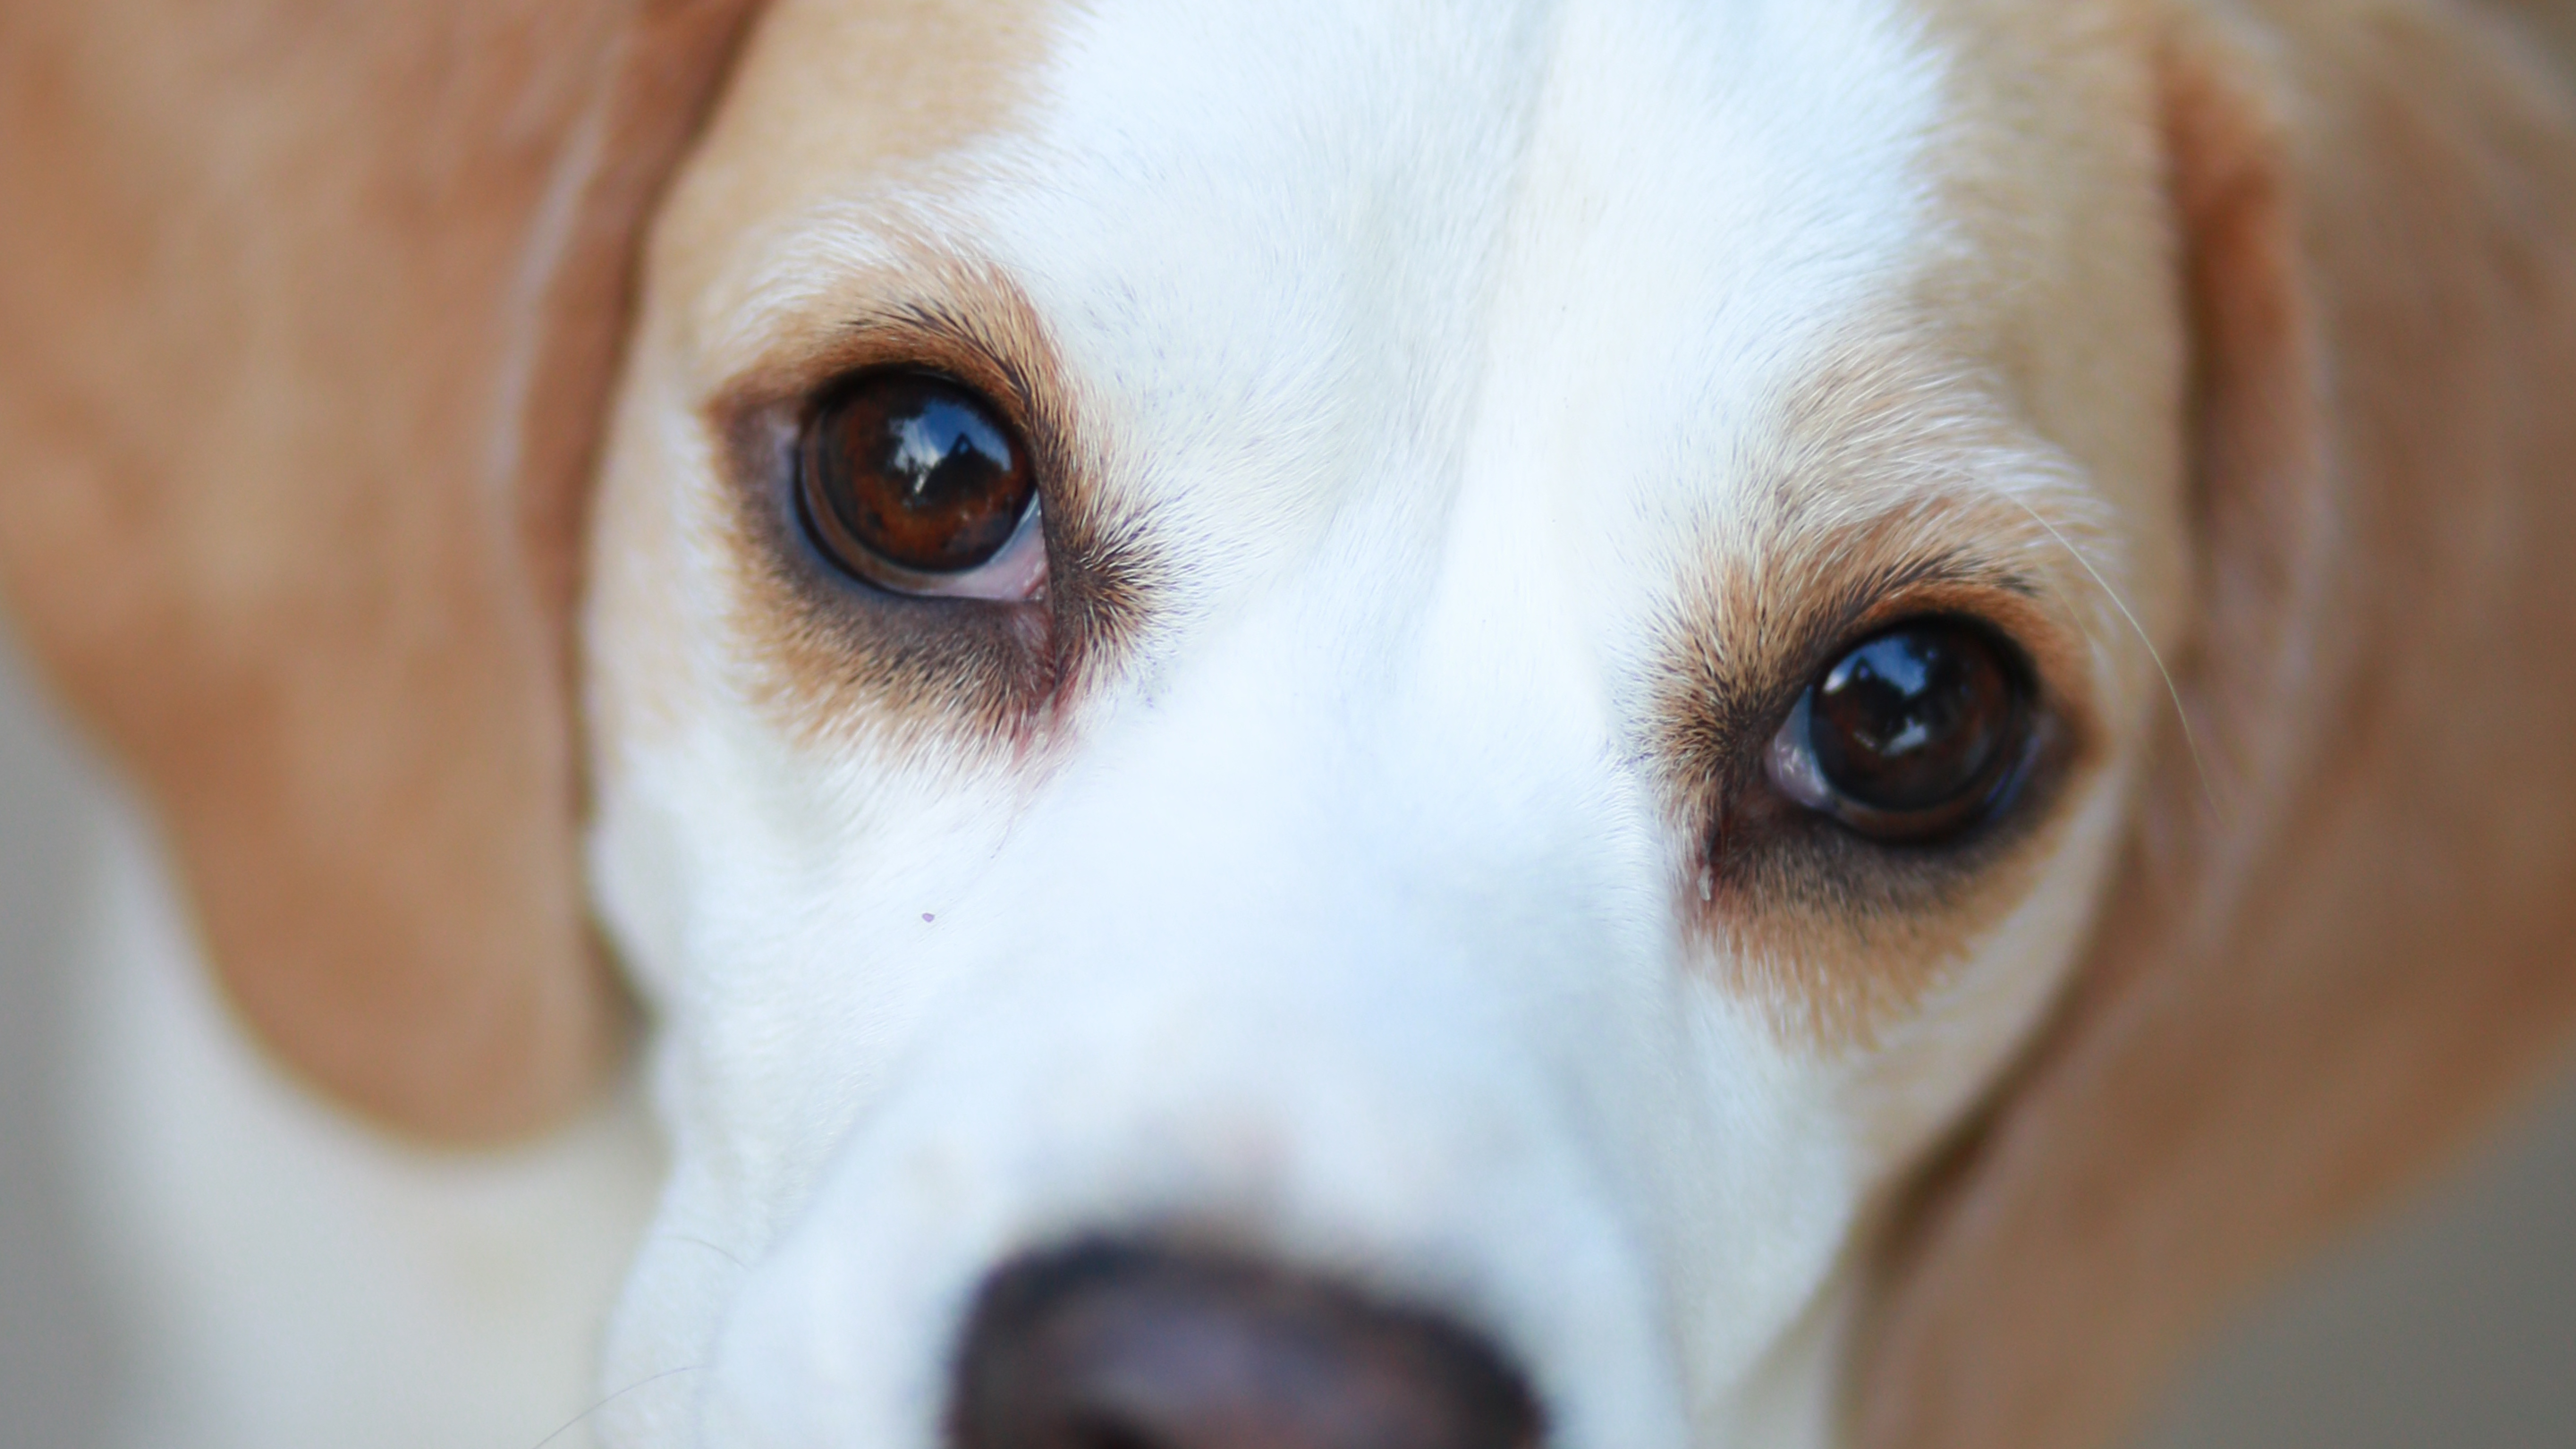 A beagle lifts her eyes up